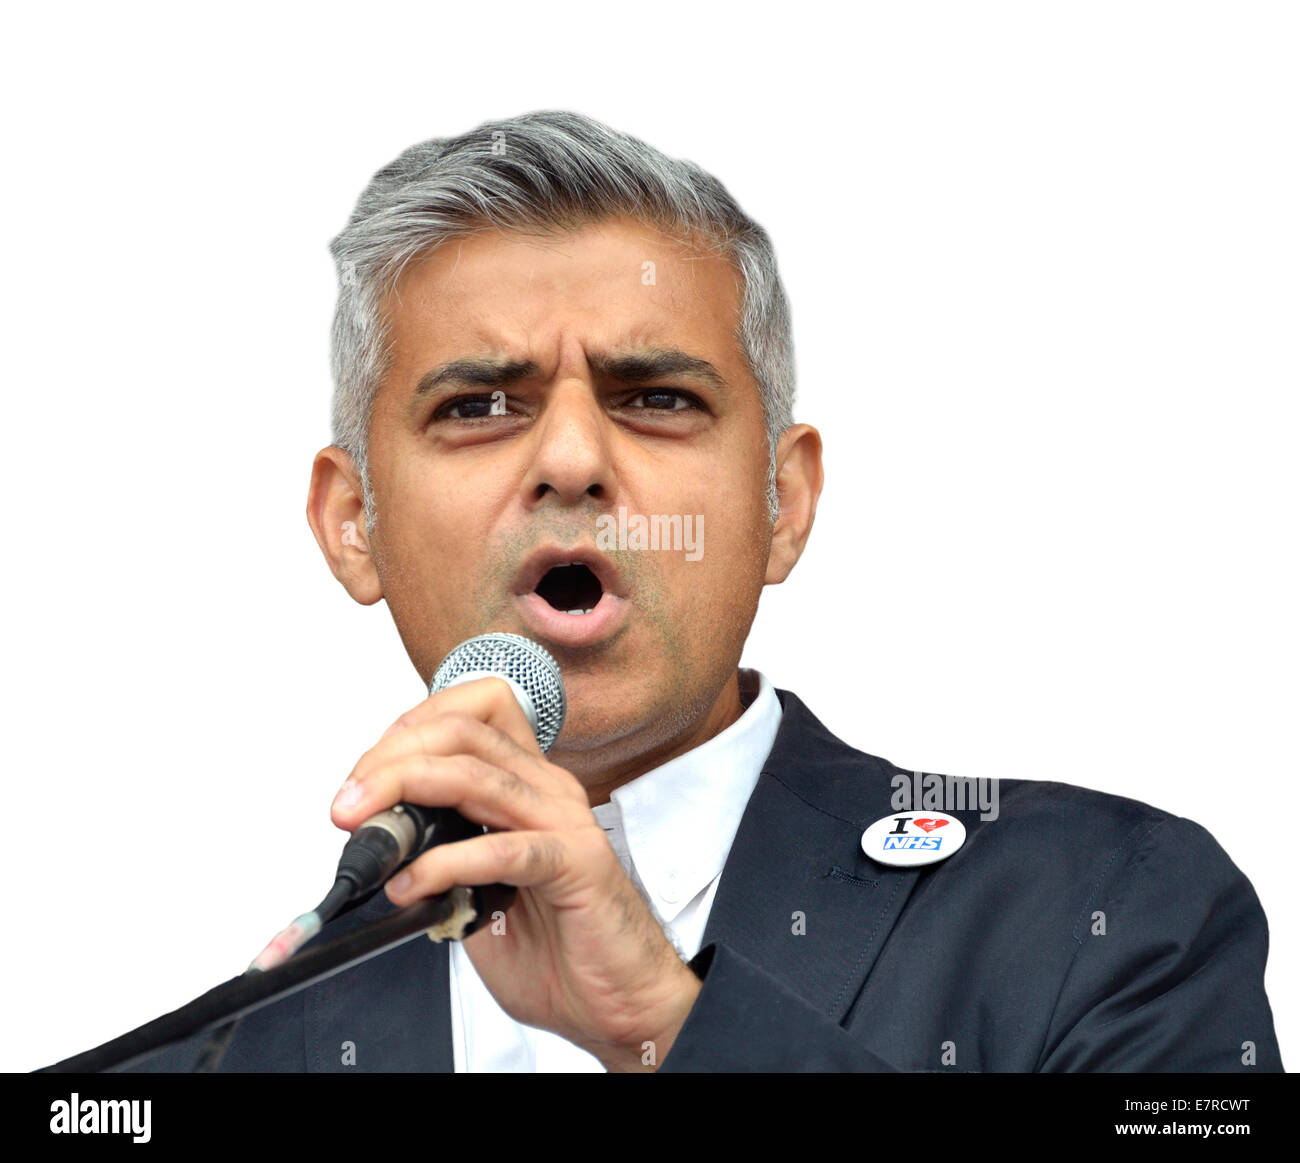 Sadiq Khan MP (Labour, Tooting) Shadow Secretary of State for Justice, 2014 - Stock Image